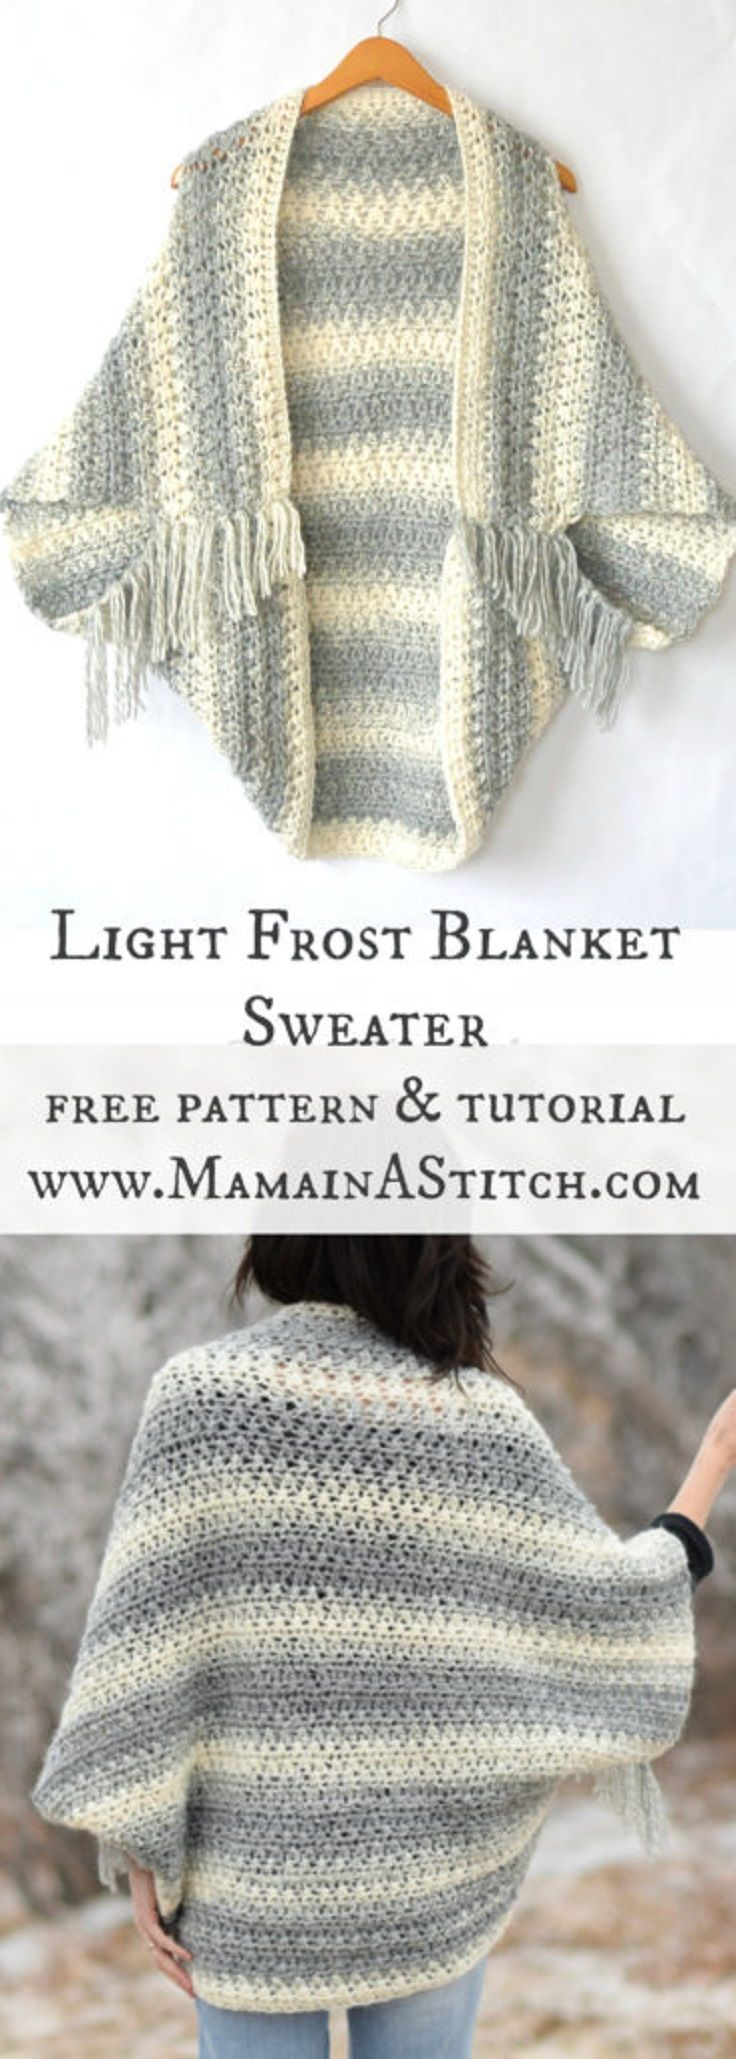 Crochet Light Frost Sweater Pattern - 15 Easy and Free Crochet ...